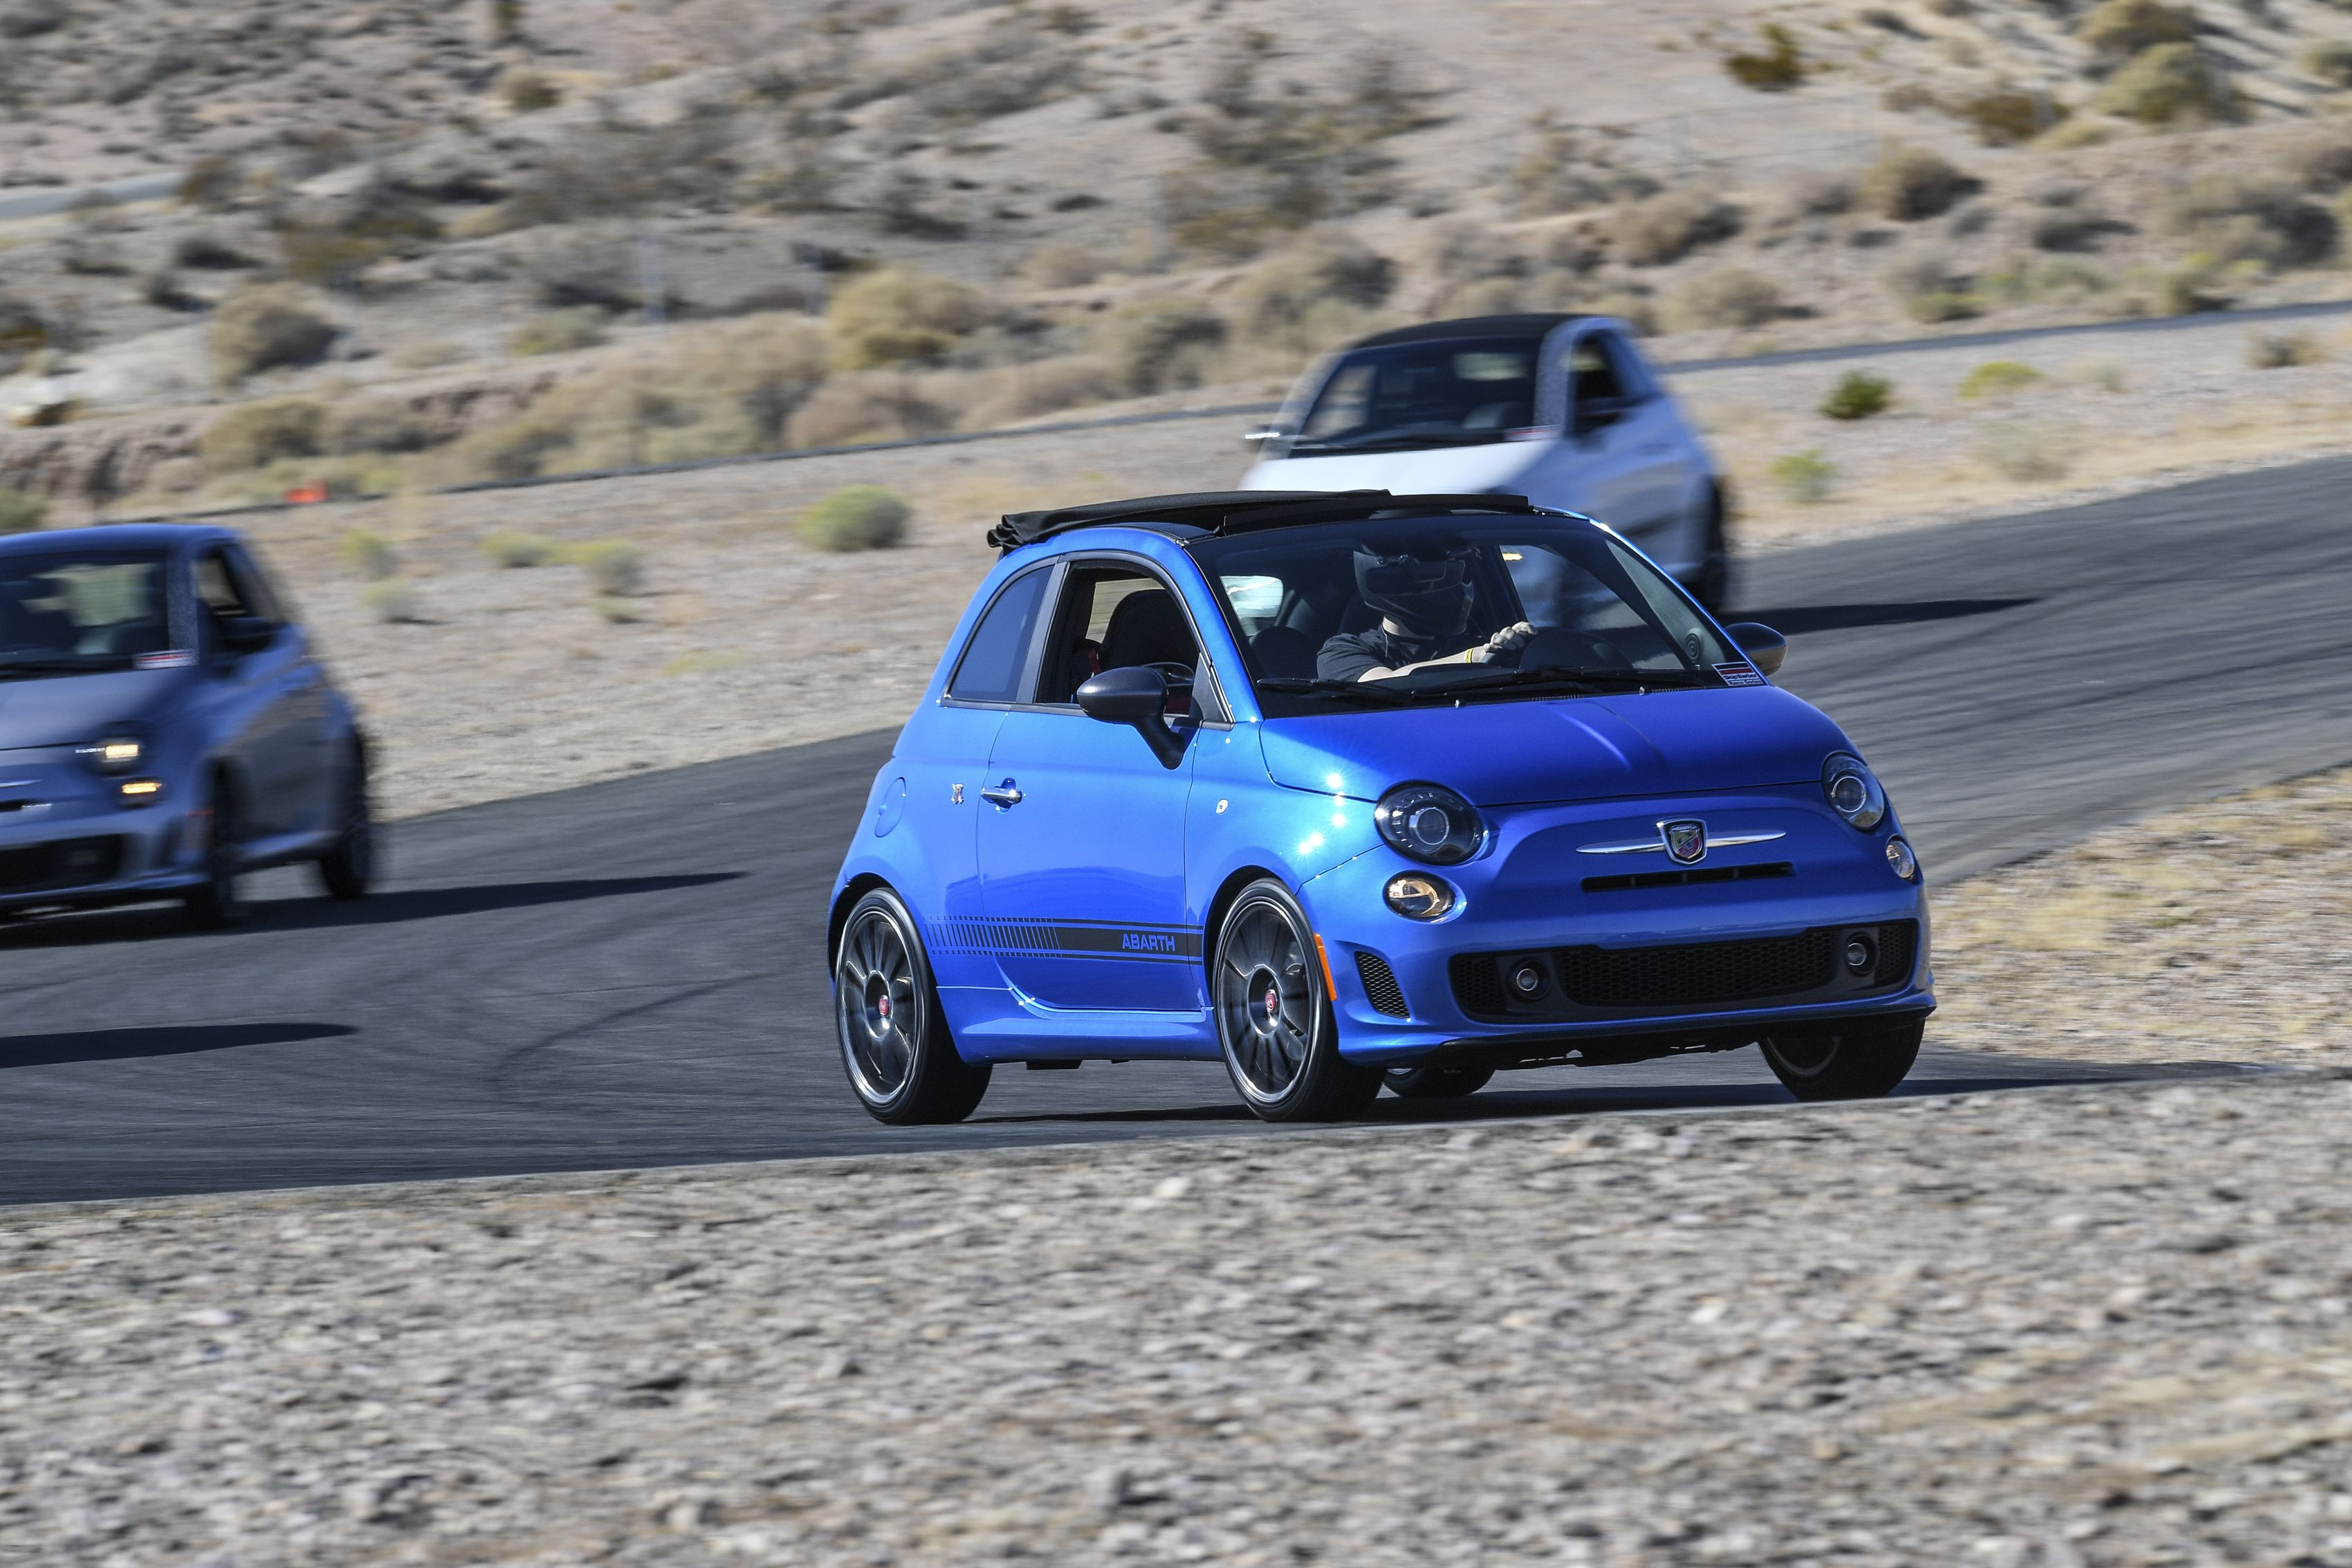 Review The Fiat 500 Abarth Is A Compact Hatch With Attitude The